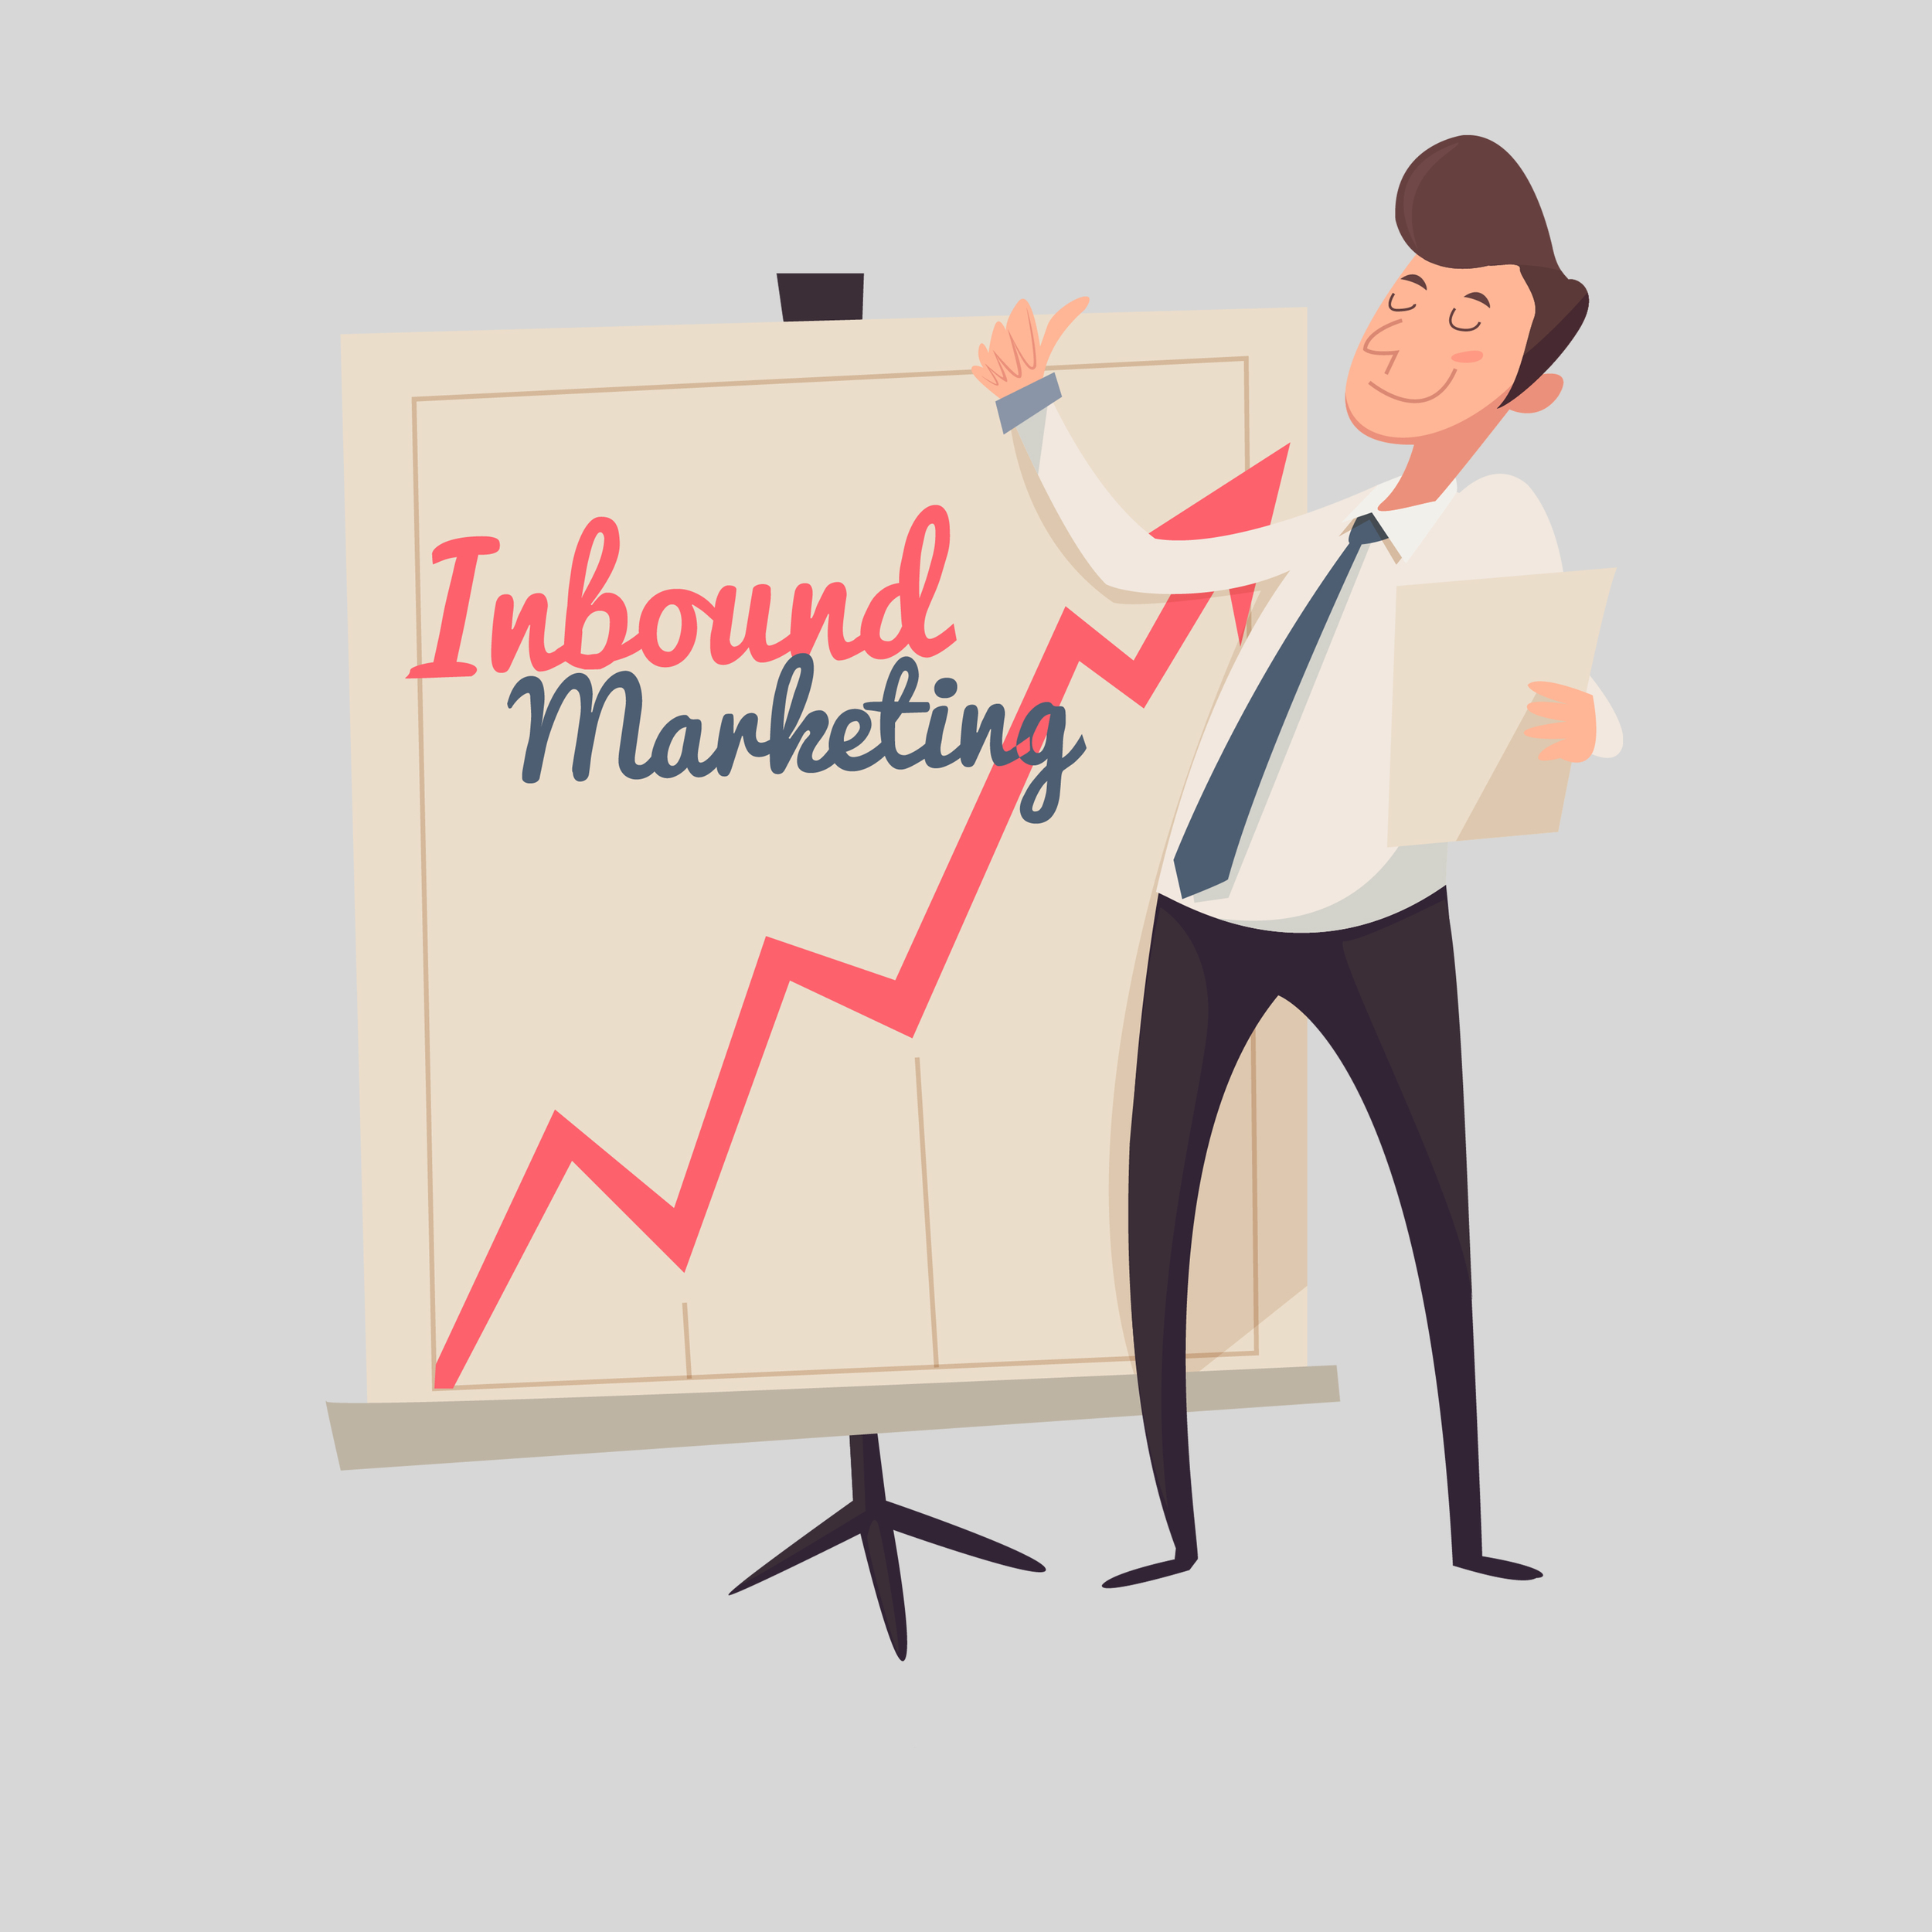 O que é o Inbound Marketing